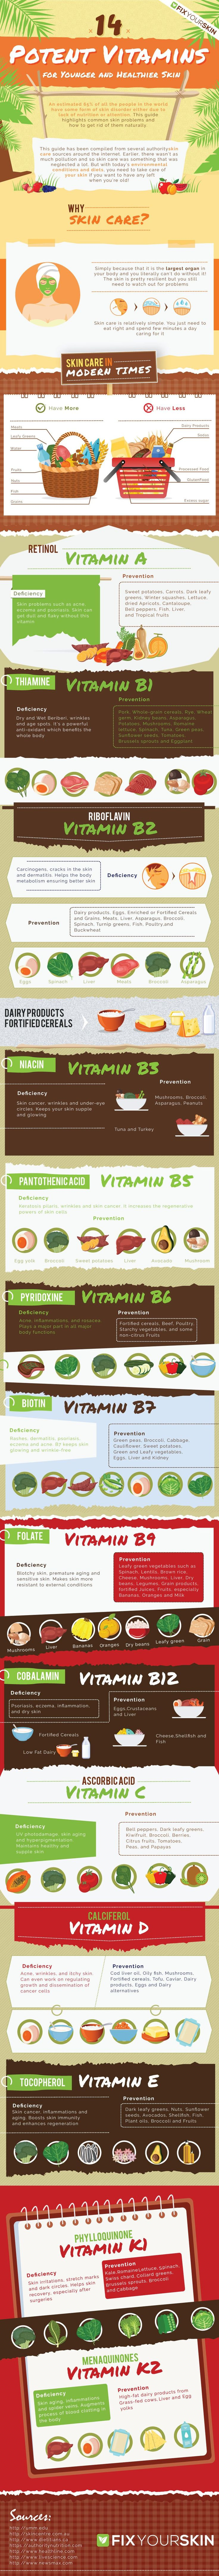 8 Vitamin Rich Foods For Glowing Skin